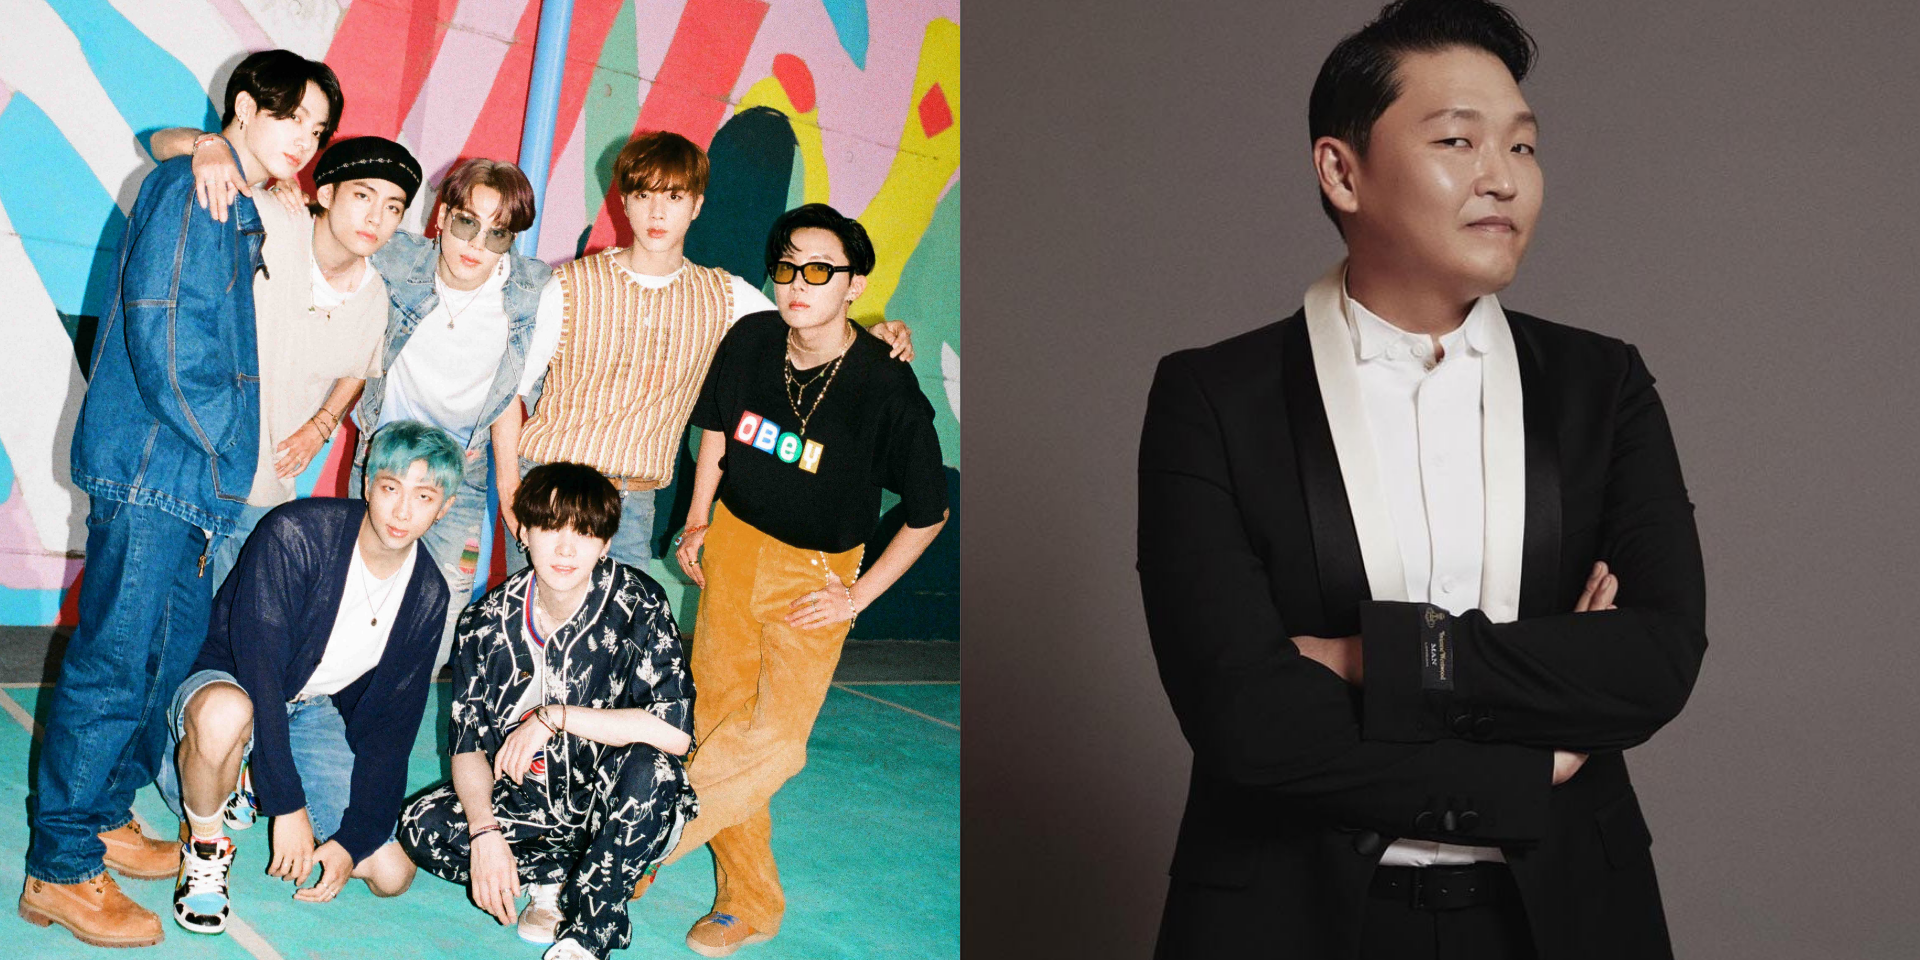 BTS' 'Dynamite' overtakes PSY's 'Gangnam Style' record for the longest-charting song by a Korean act on Billboard's Hot 100 chart